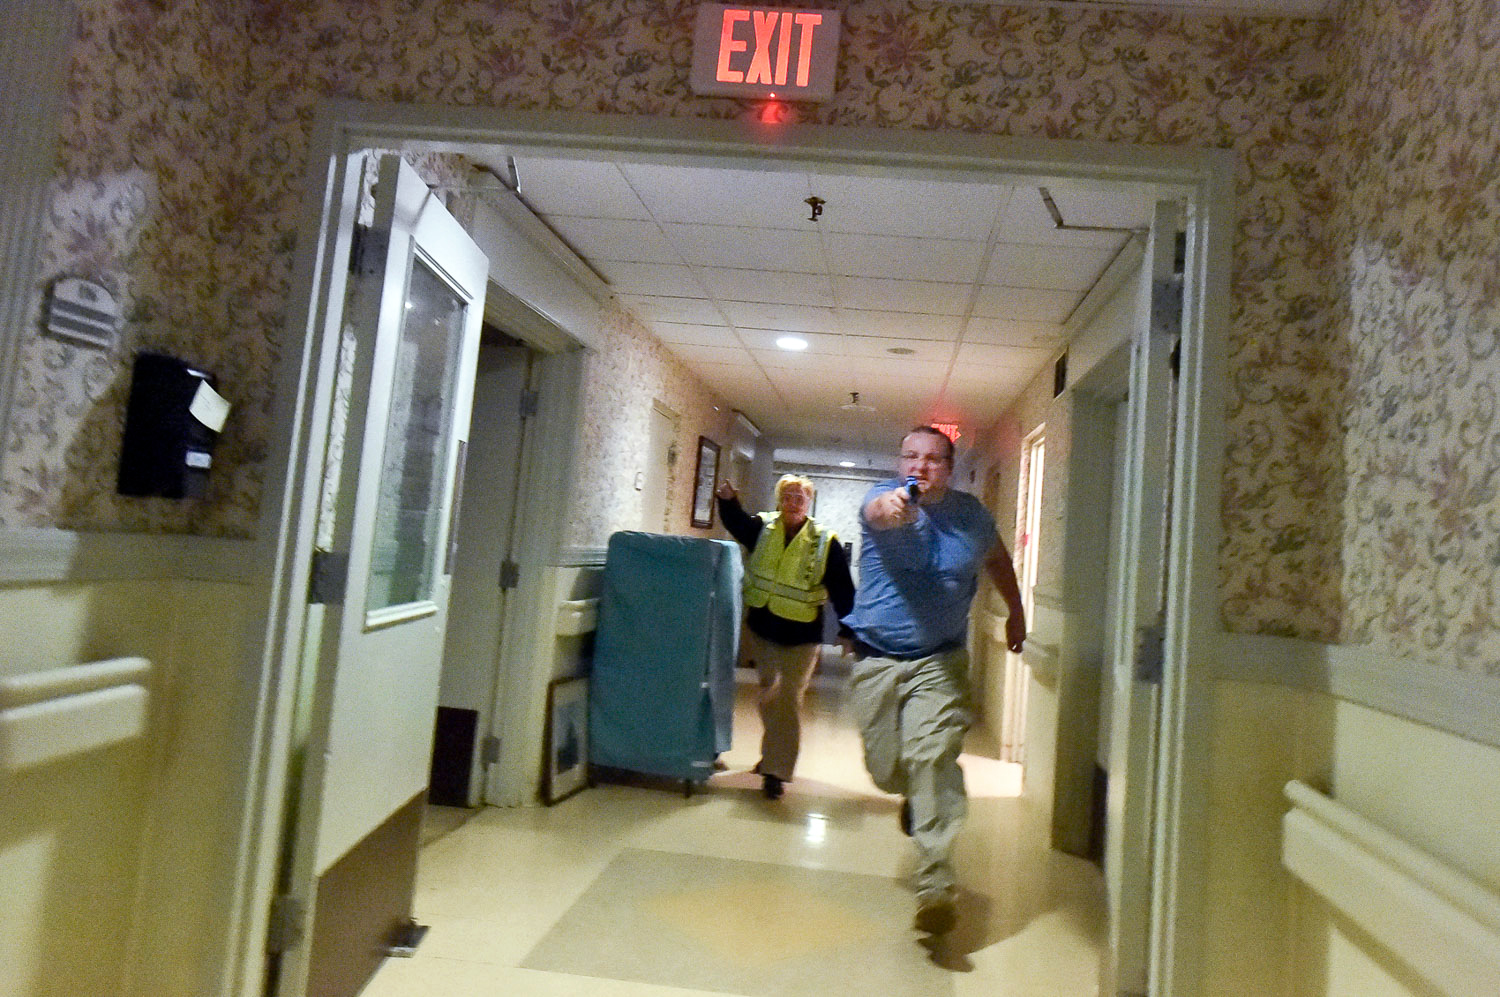 Nikon D4s, 1/320 @ f/4, ISO 20,000, 17-35mm  Melrose Patrolman Levi DiFranza charges down the hallway as he plays the role of the assailant during an active shooter drill inside Wingate at Melrose, Friday, May 12, 2017. [Wicked Local Staff Photo / David Sokol]